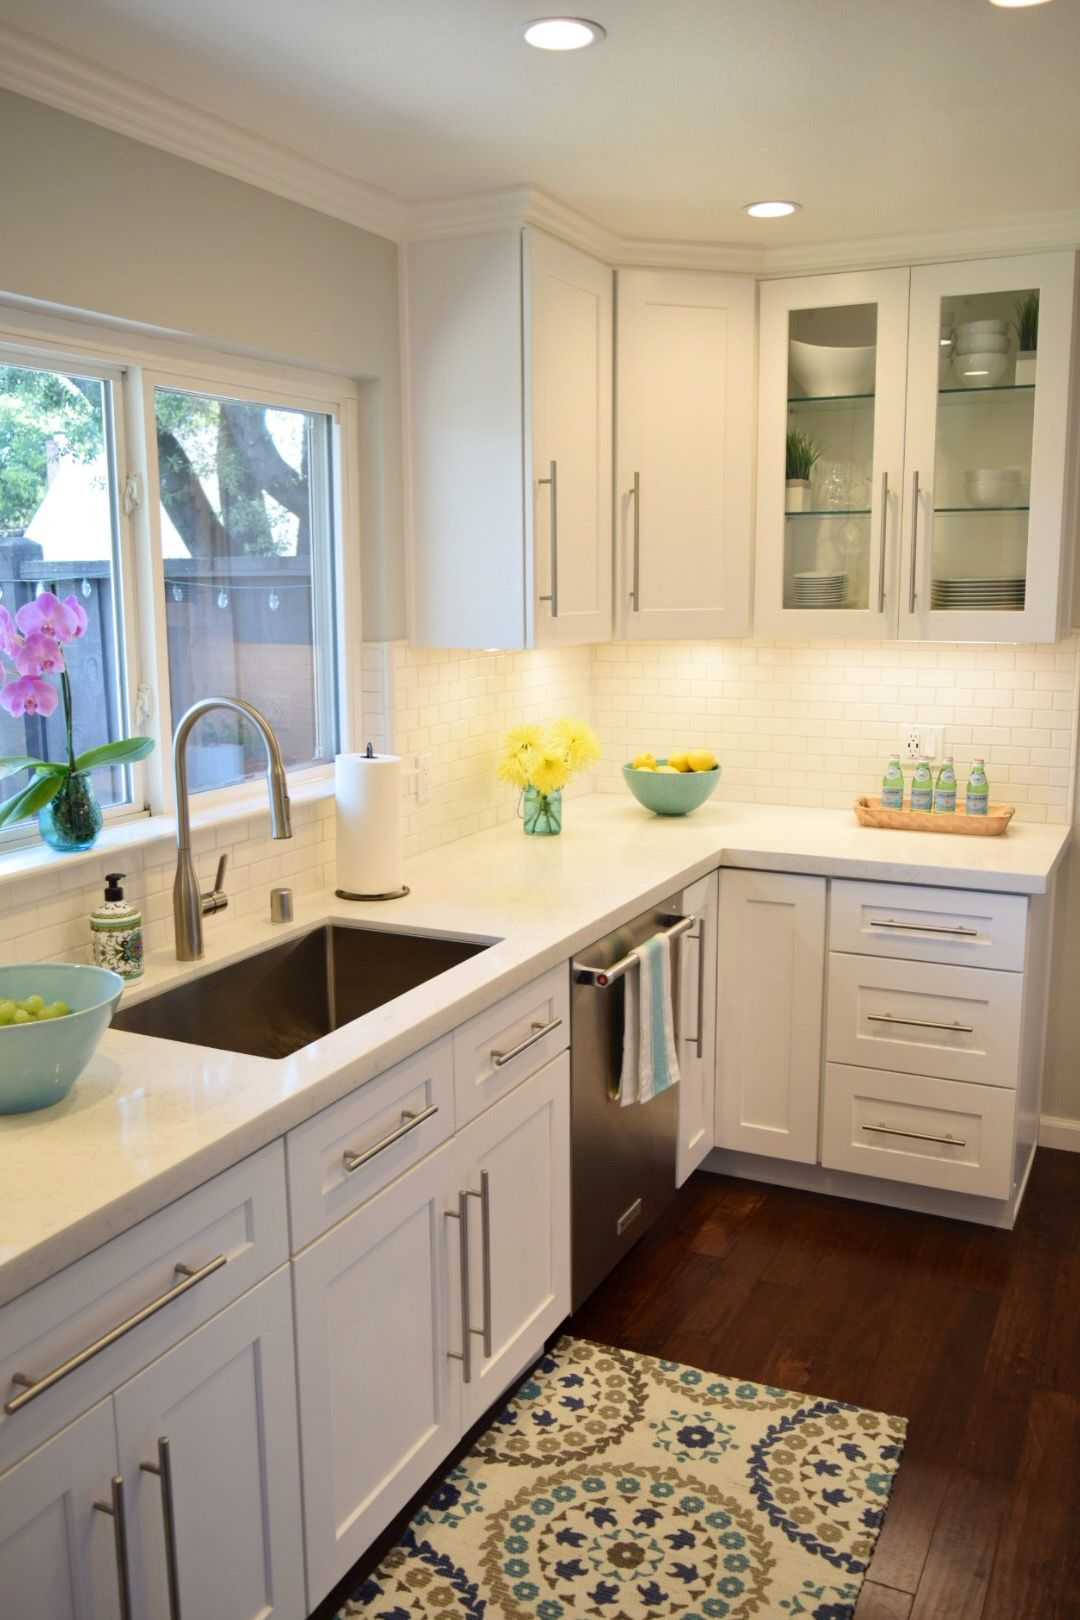 Kitchen newly remodeled at crazy chic design home kitchens